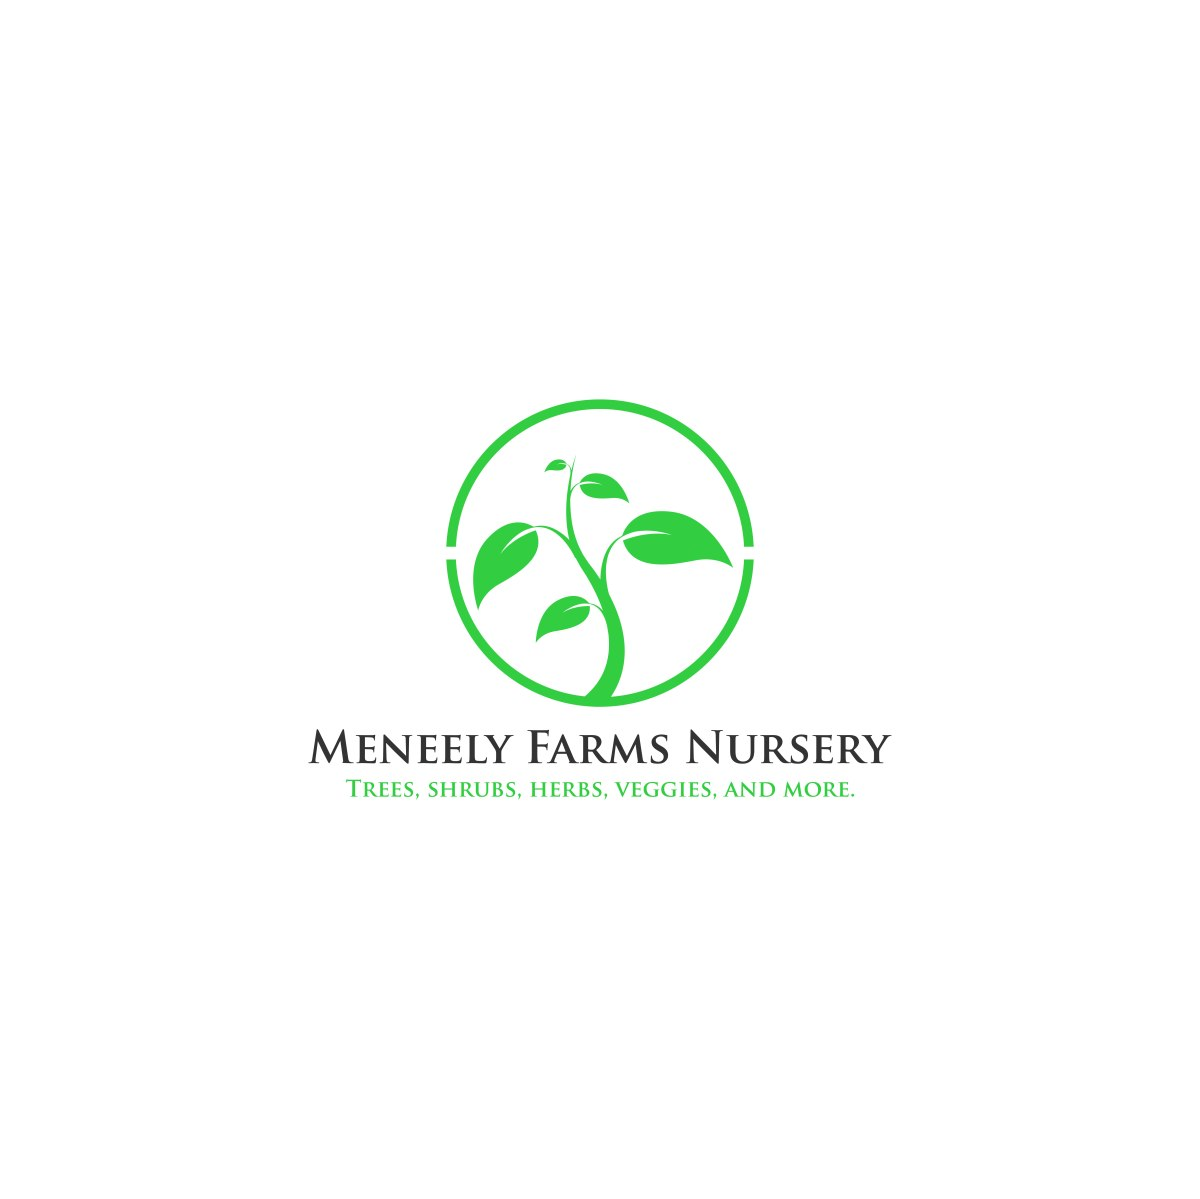 Meneely Farms Logo with green leaf design